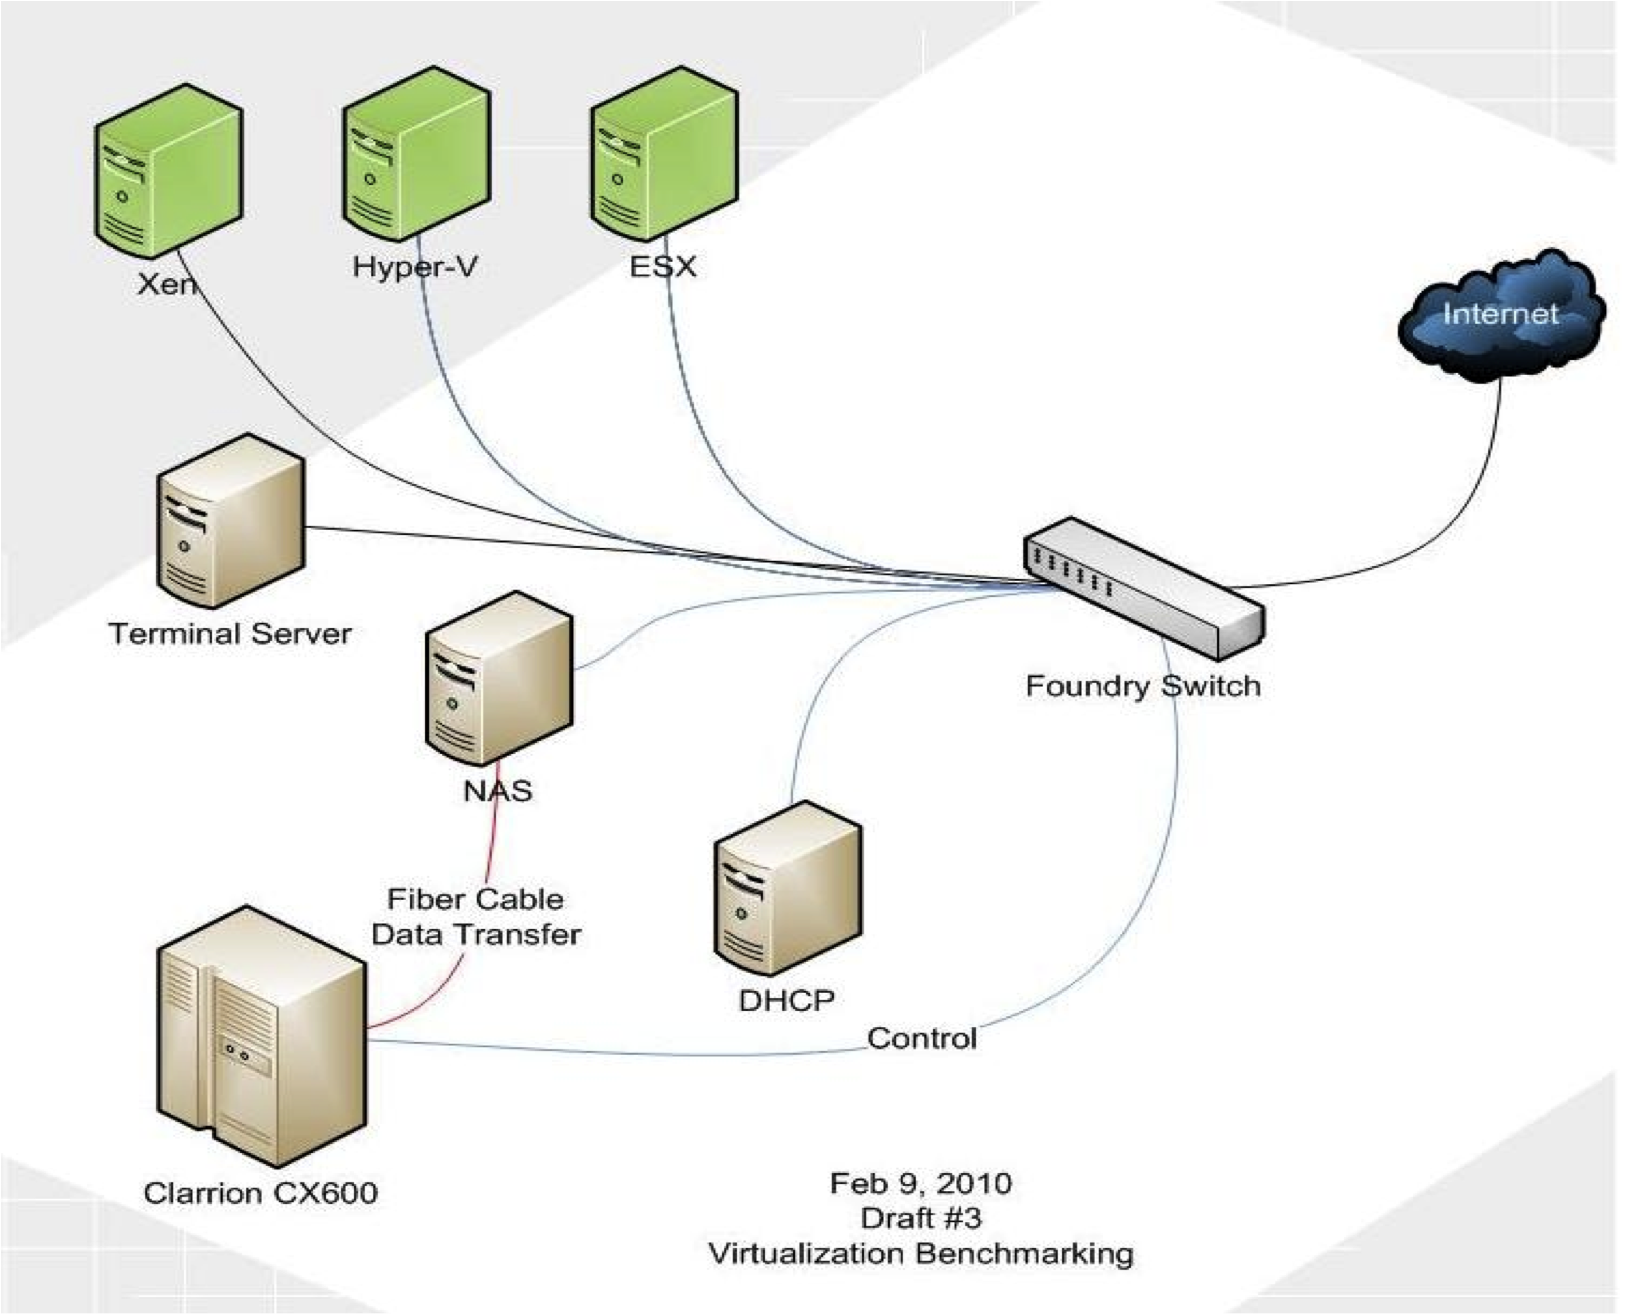 Network Diagrams Citrix  Network Diagram  Virtualization